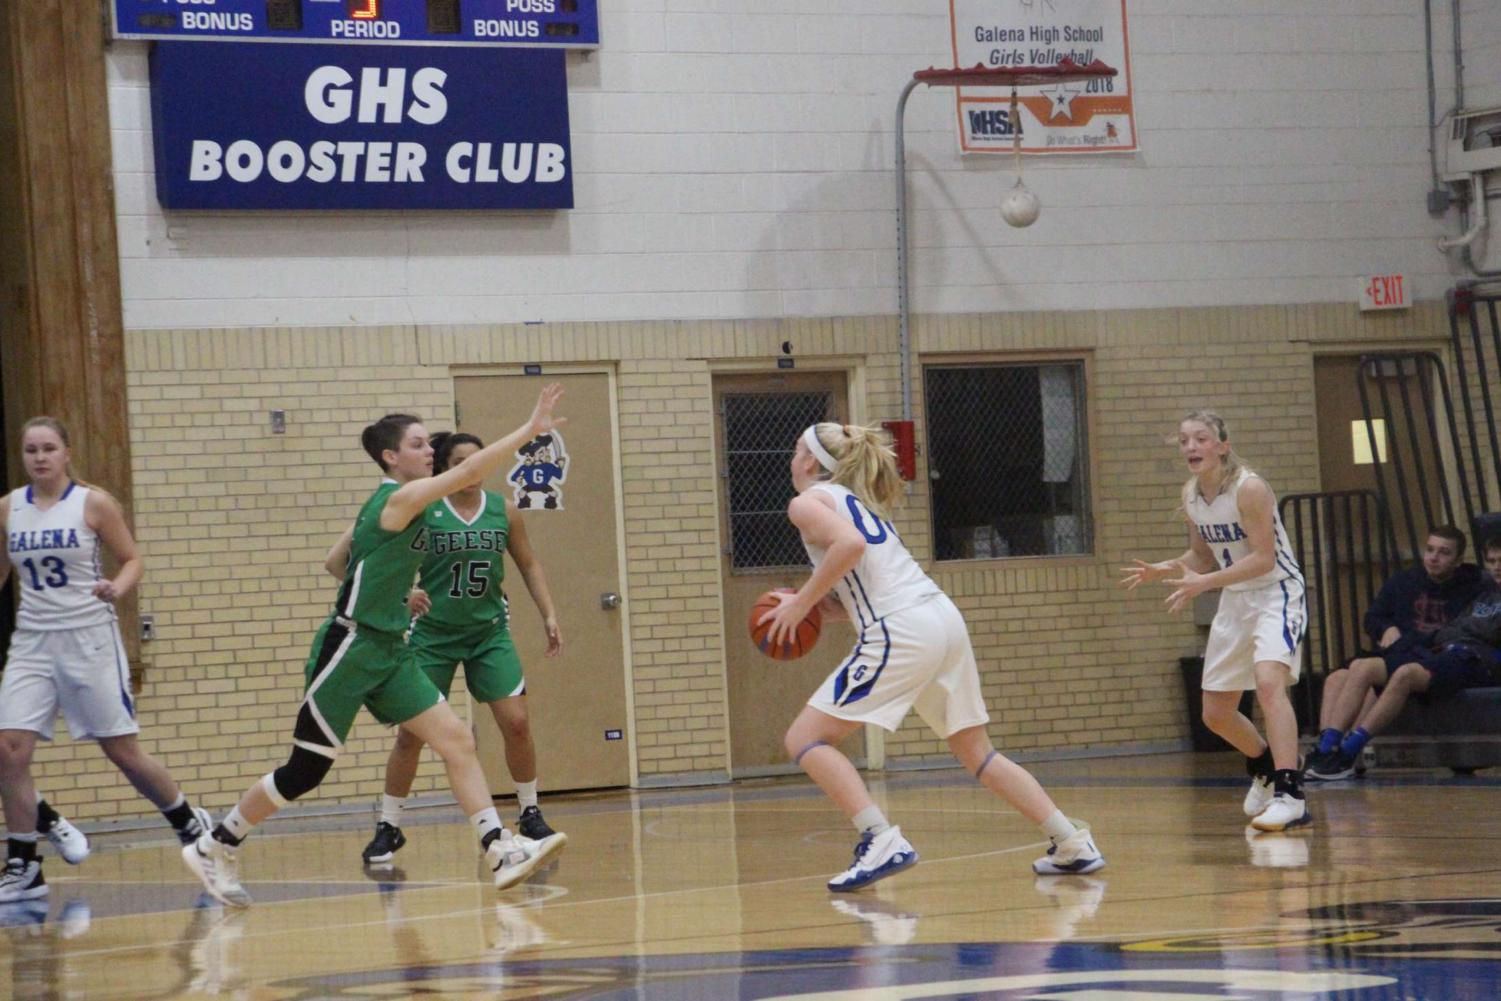 """Striding for greatness. Corrina Noble '21 drives a ball down the court in a past 2019 game against Wethersfield High School. """"I am really excited to see how this season goes. It's going to be a very different experience, but I am trying to look at it in the most positive way possible to ensure that this season will be fun and successful"""" , stated Noble."""